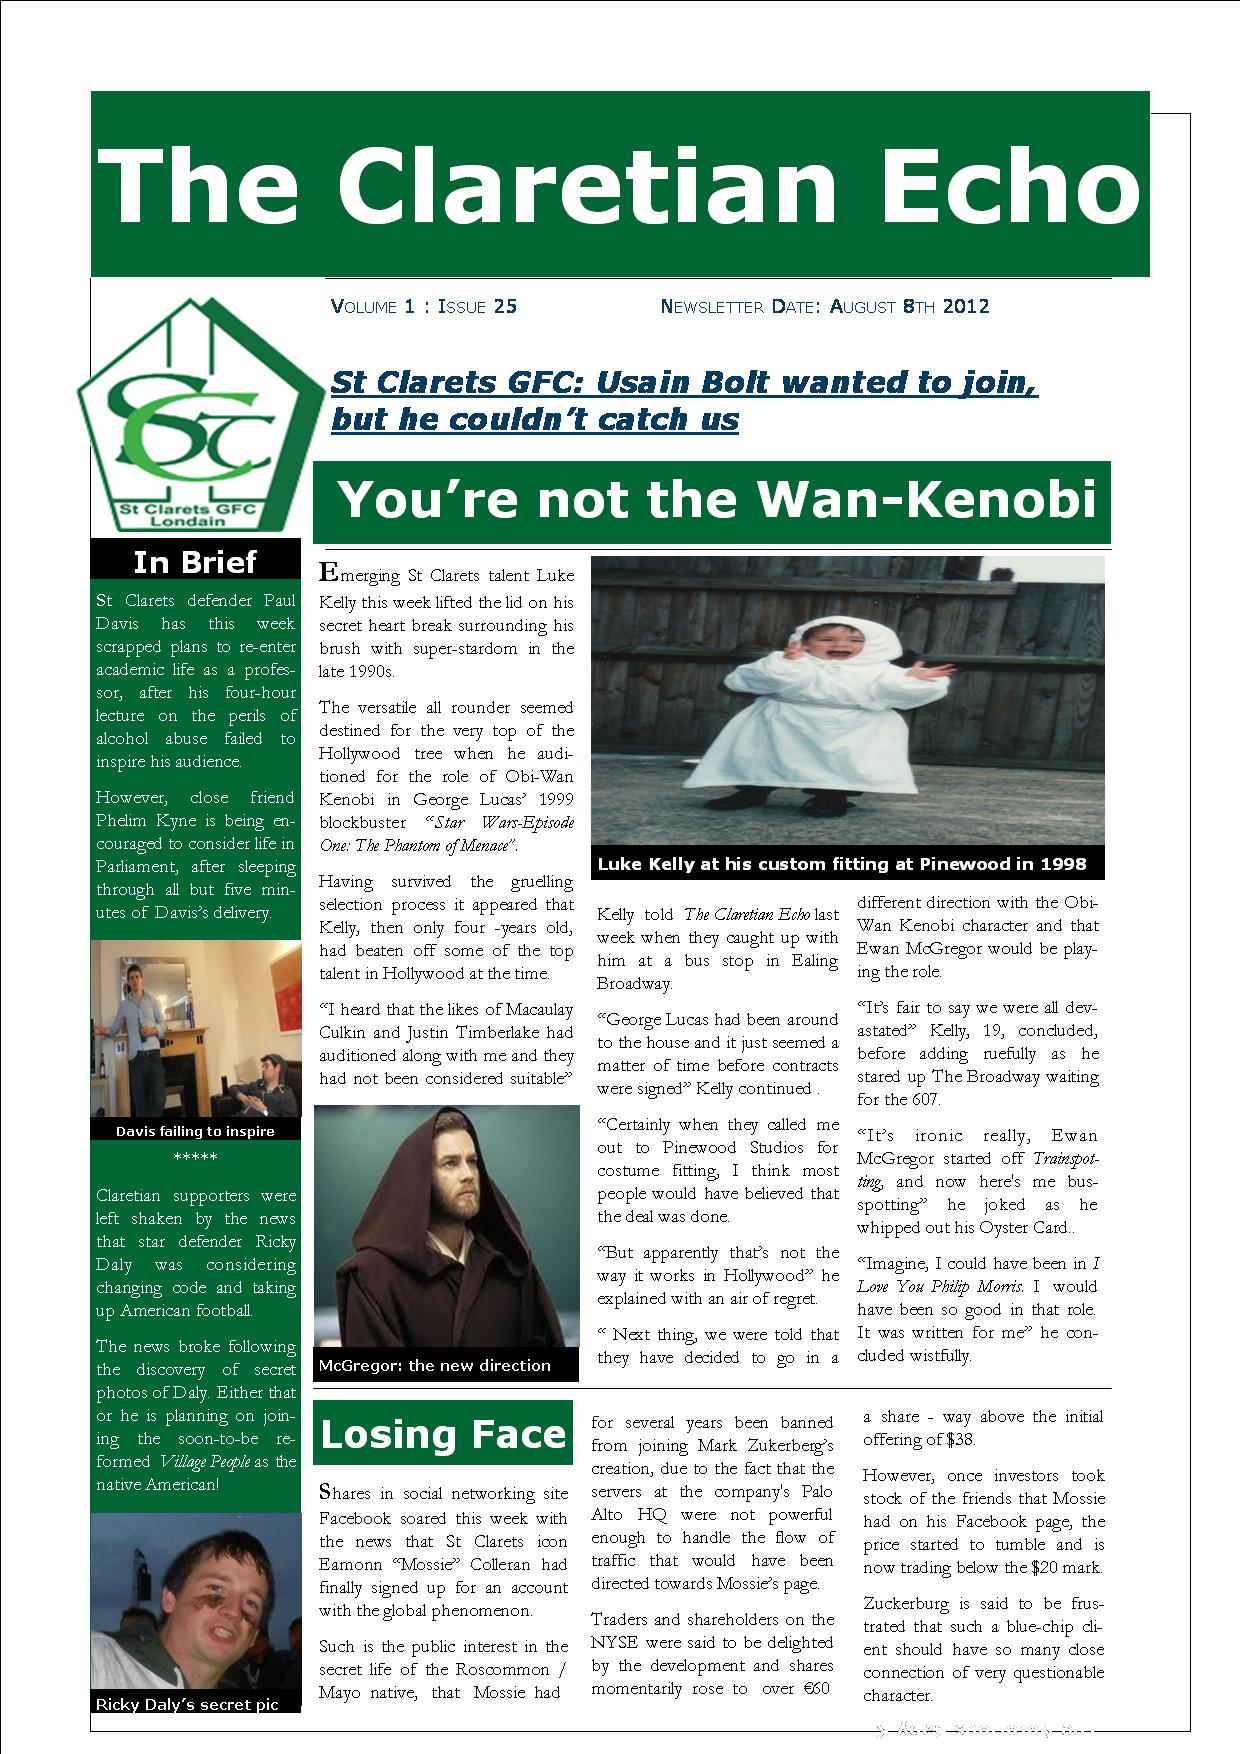 St clarets gfc hayes rugby club kingshill avenue hayes middlesex london claretian echo issue 25 the weekly newsletter from st clarets gfc in london fandeluxe Gallery